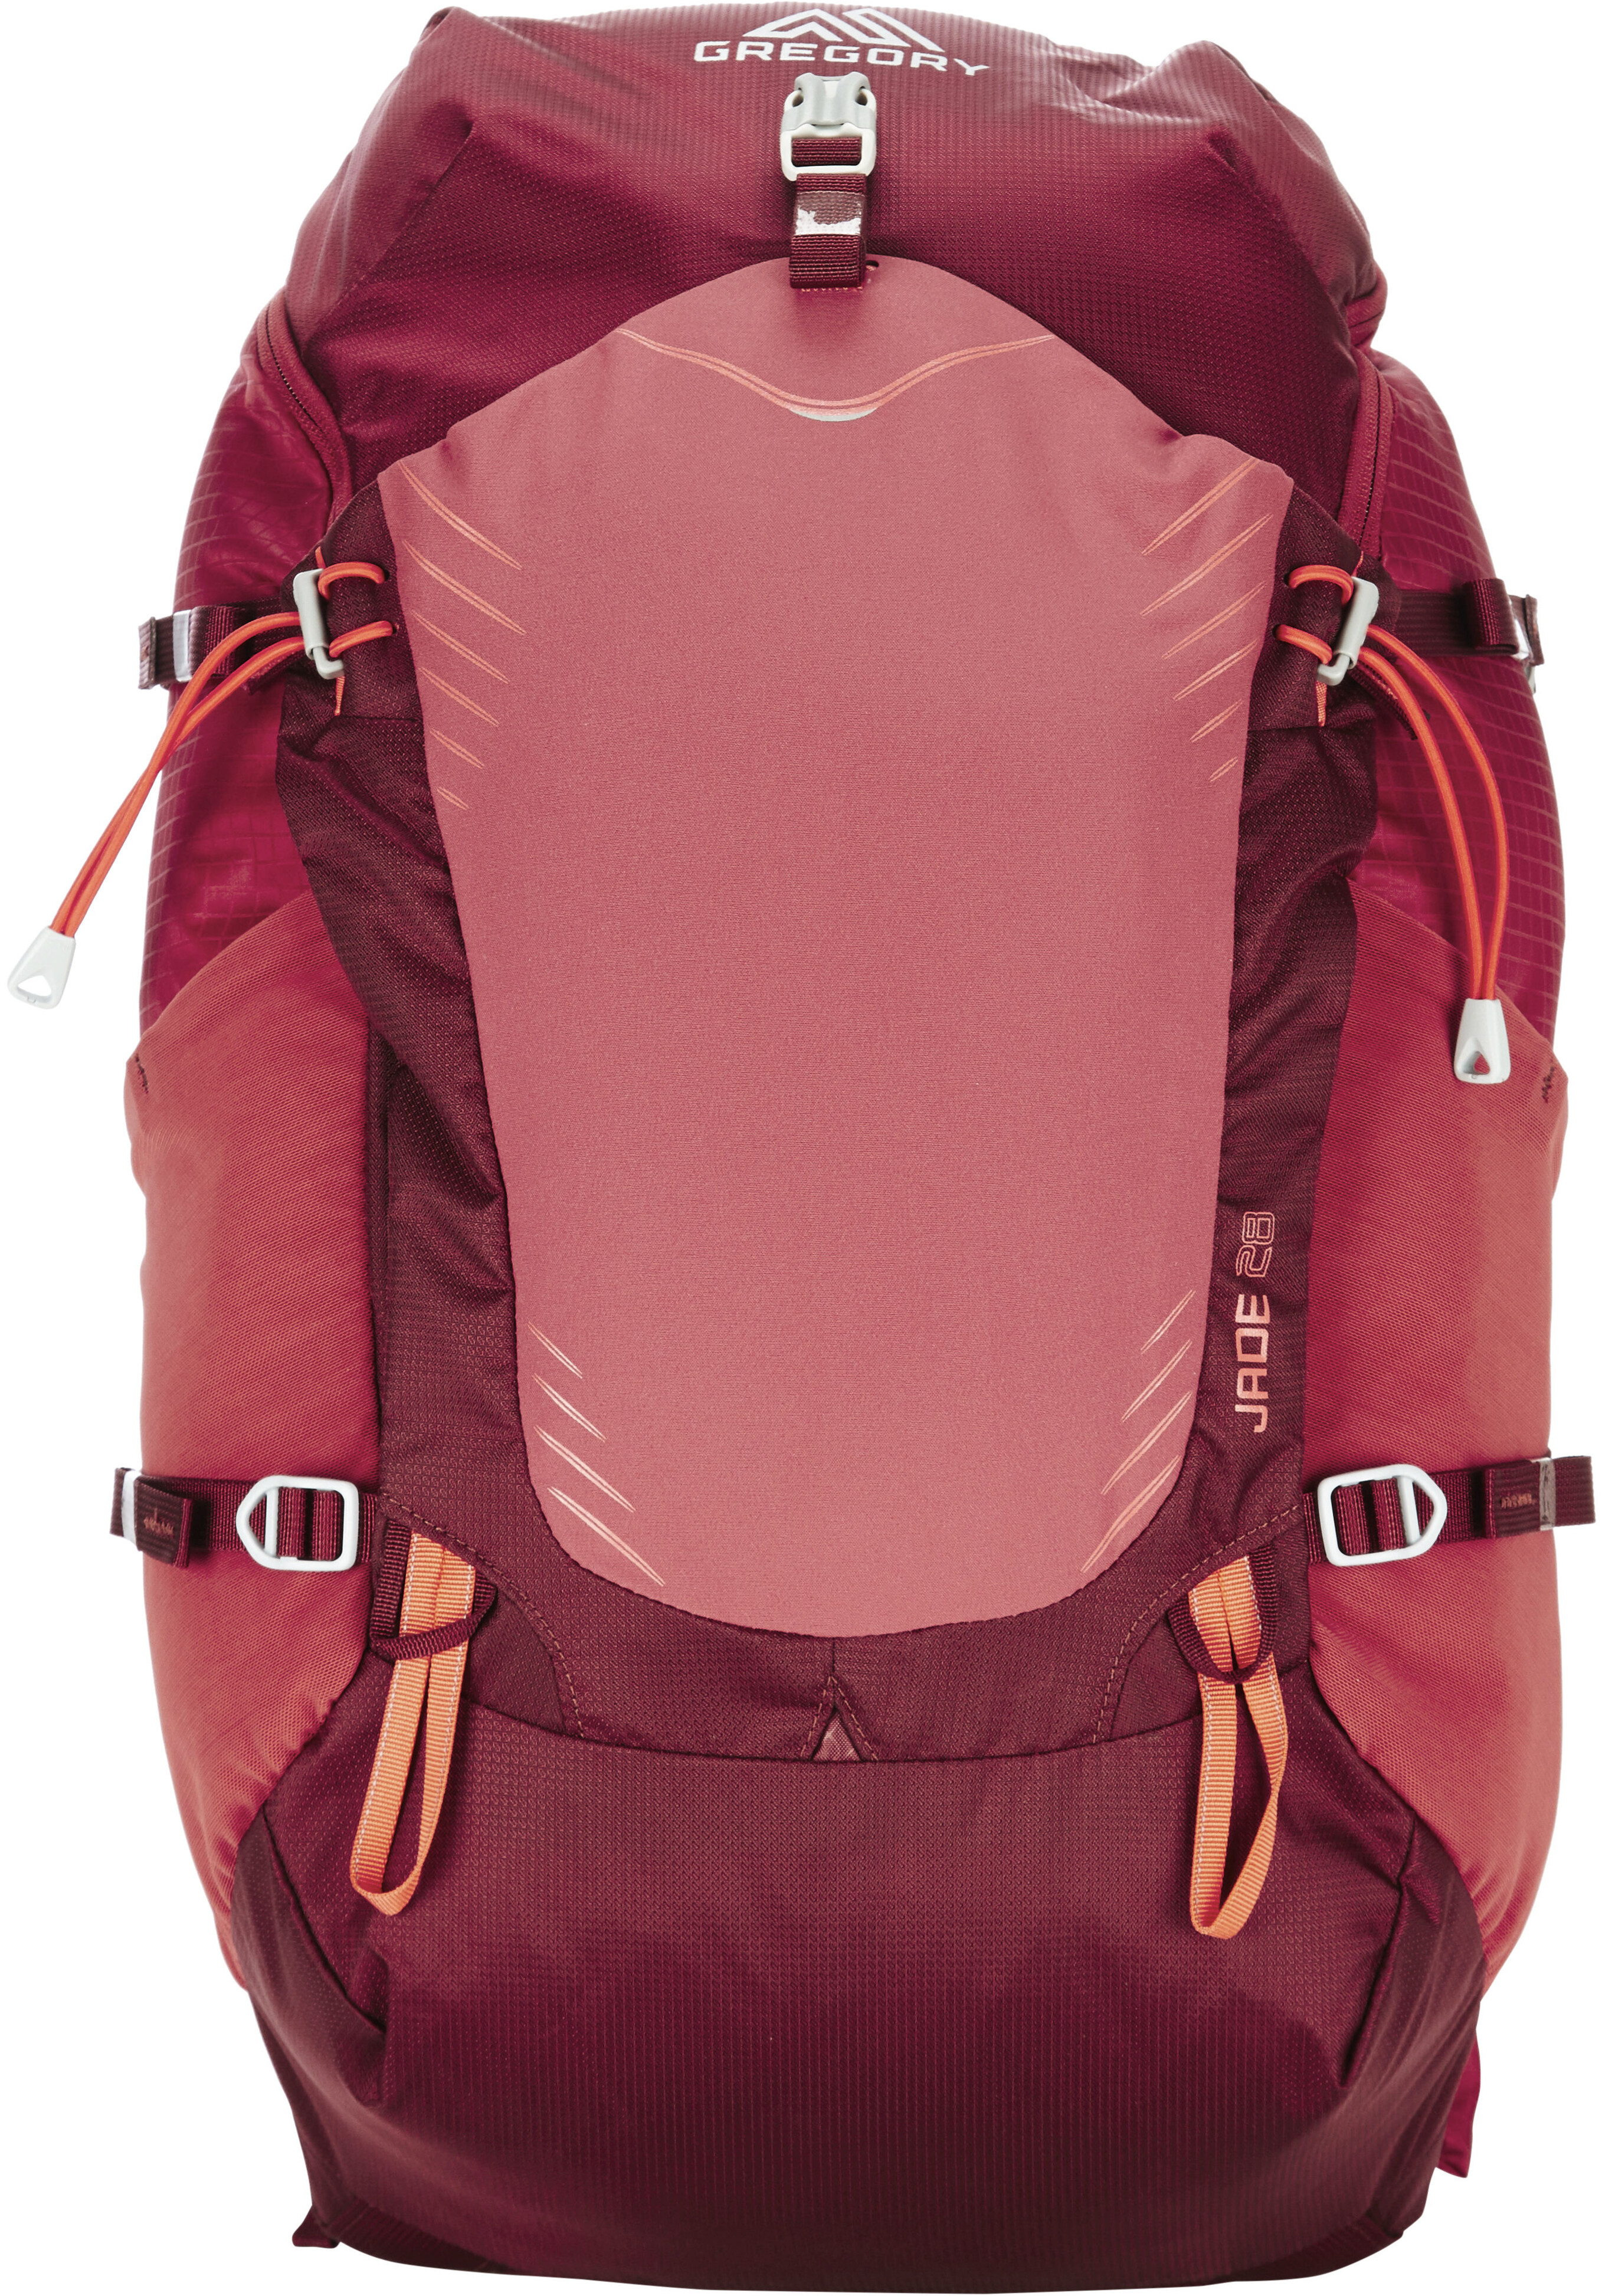 dfabd21c94092 Gregory Jade 28 Backpack Women S red at Addnature.co.uk